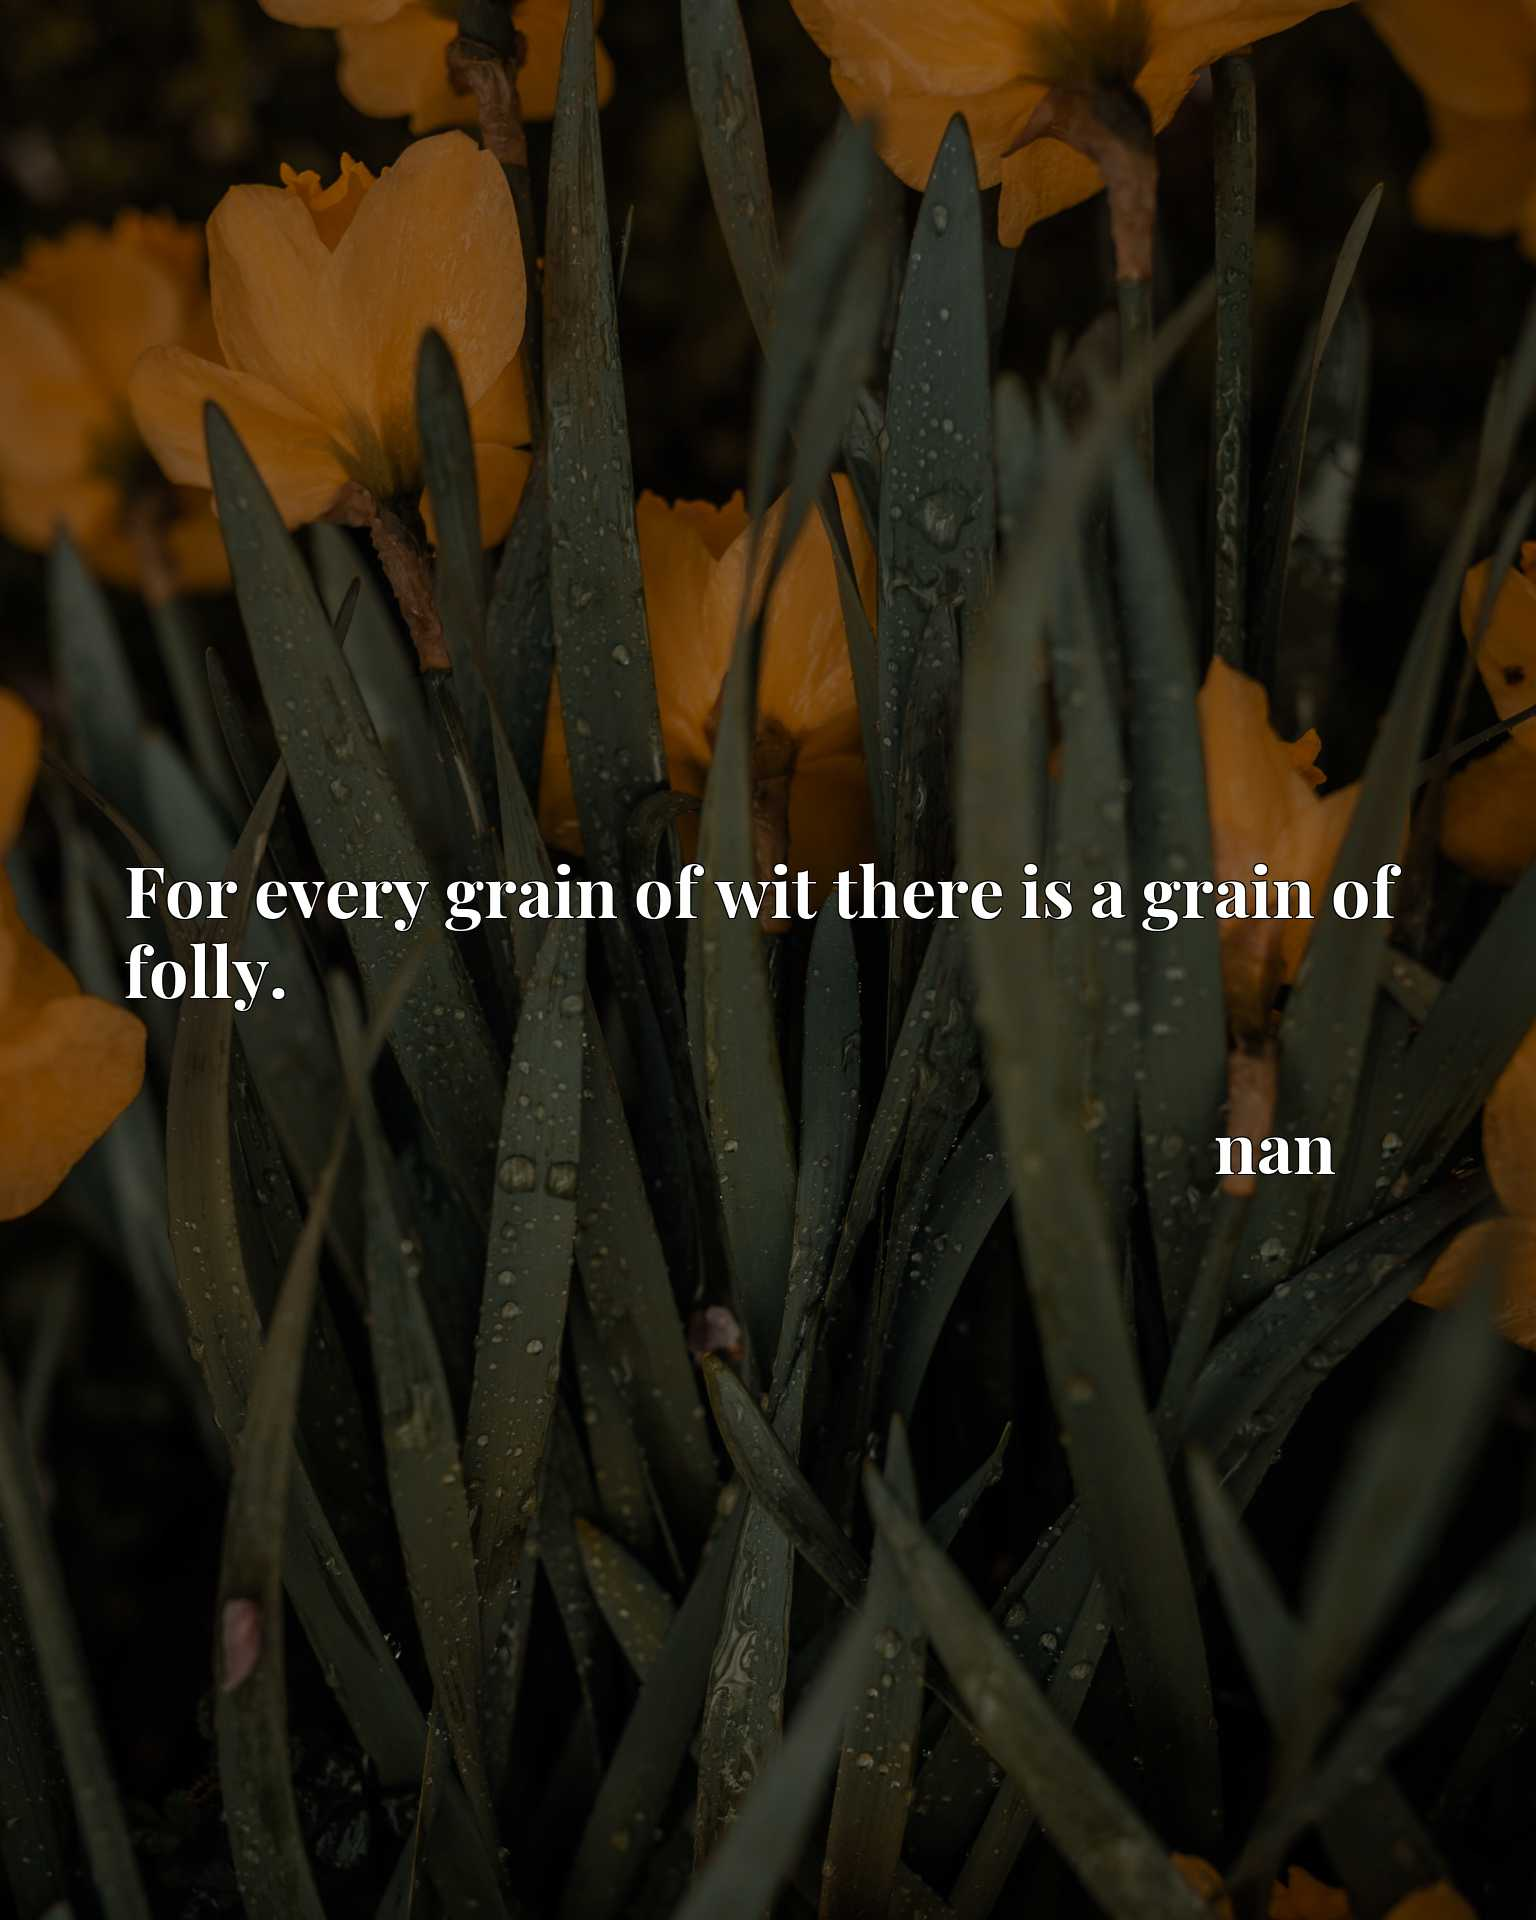 For every grain of wit there is a grain of folly.